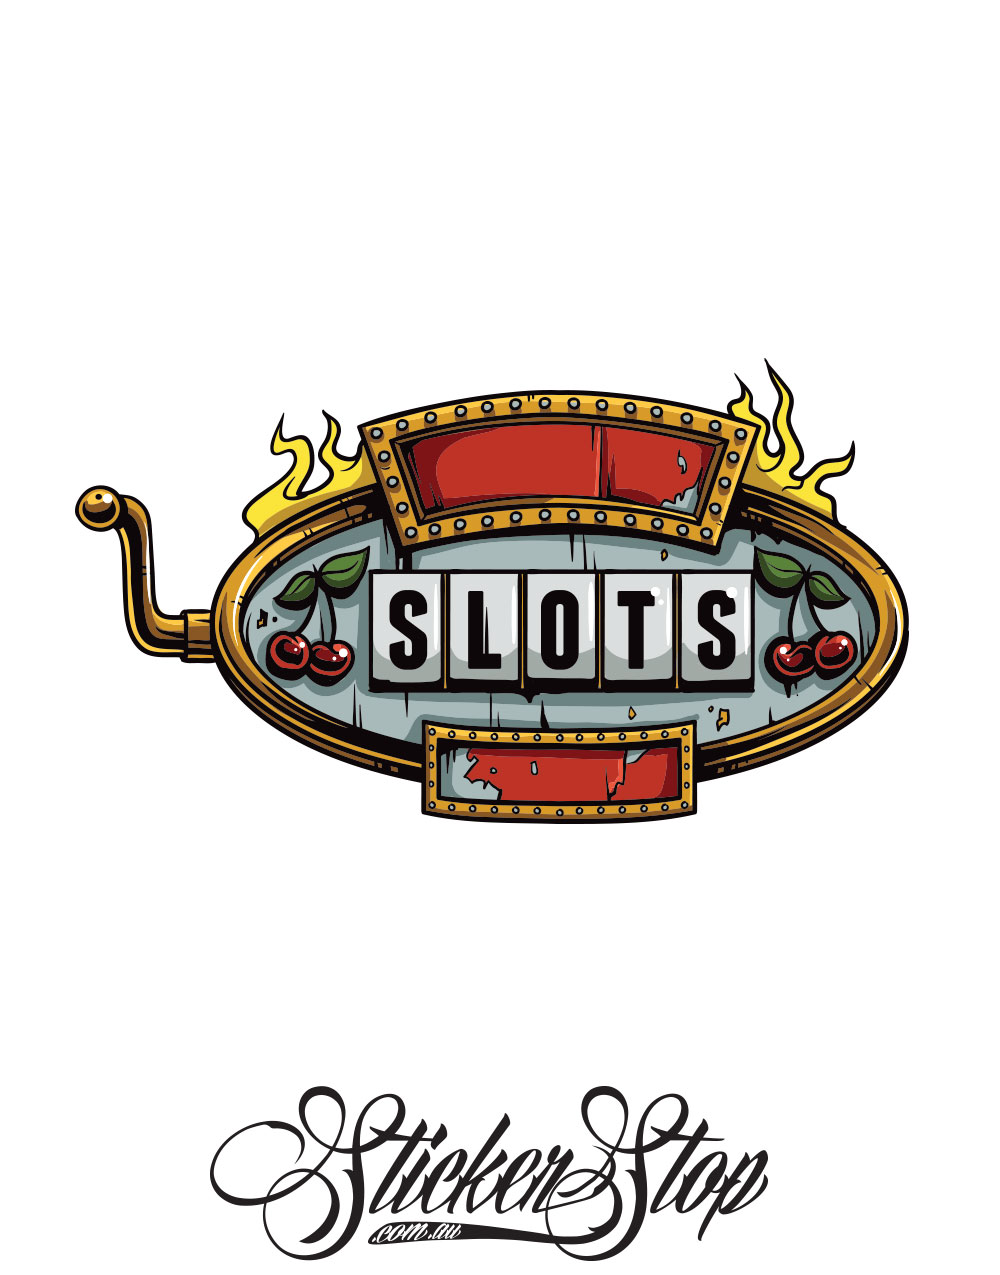 Slots Sign Gambling Colour Sticker